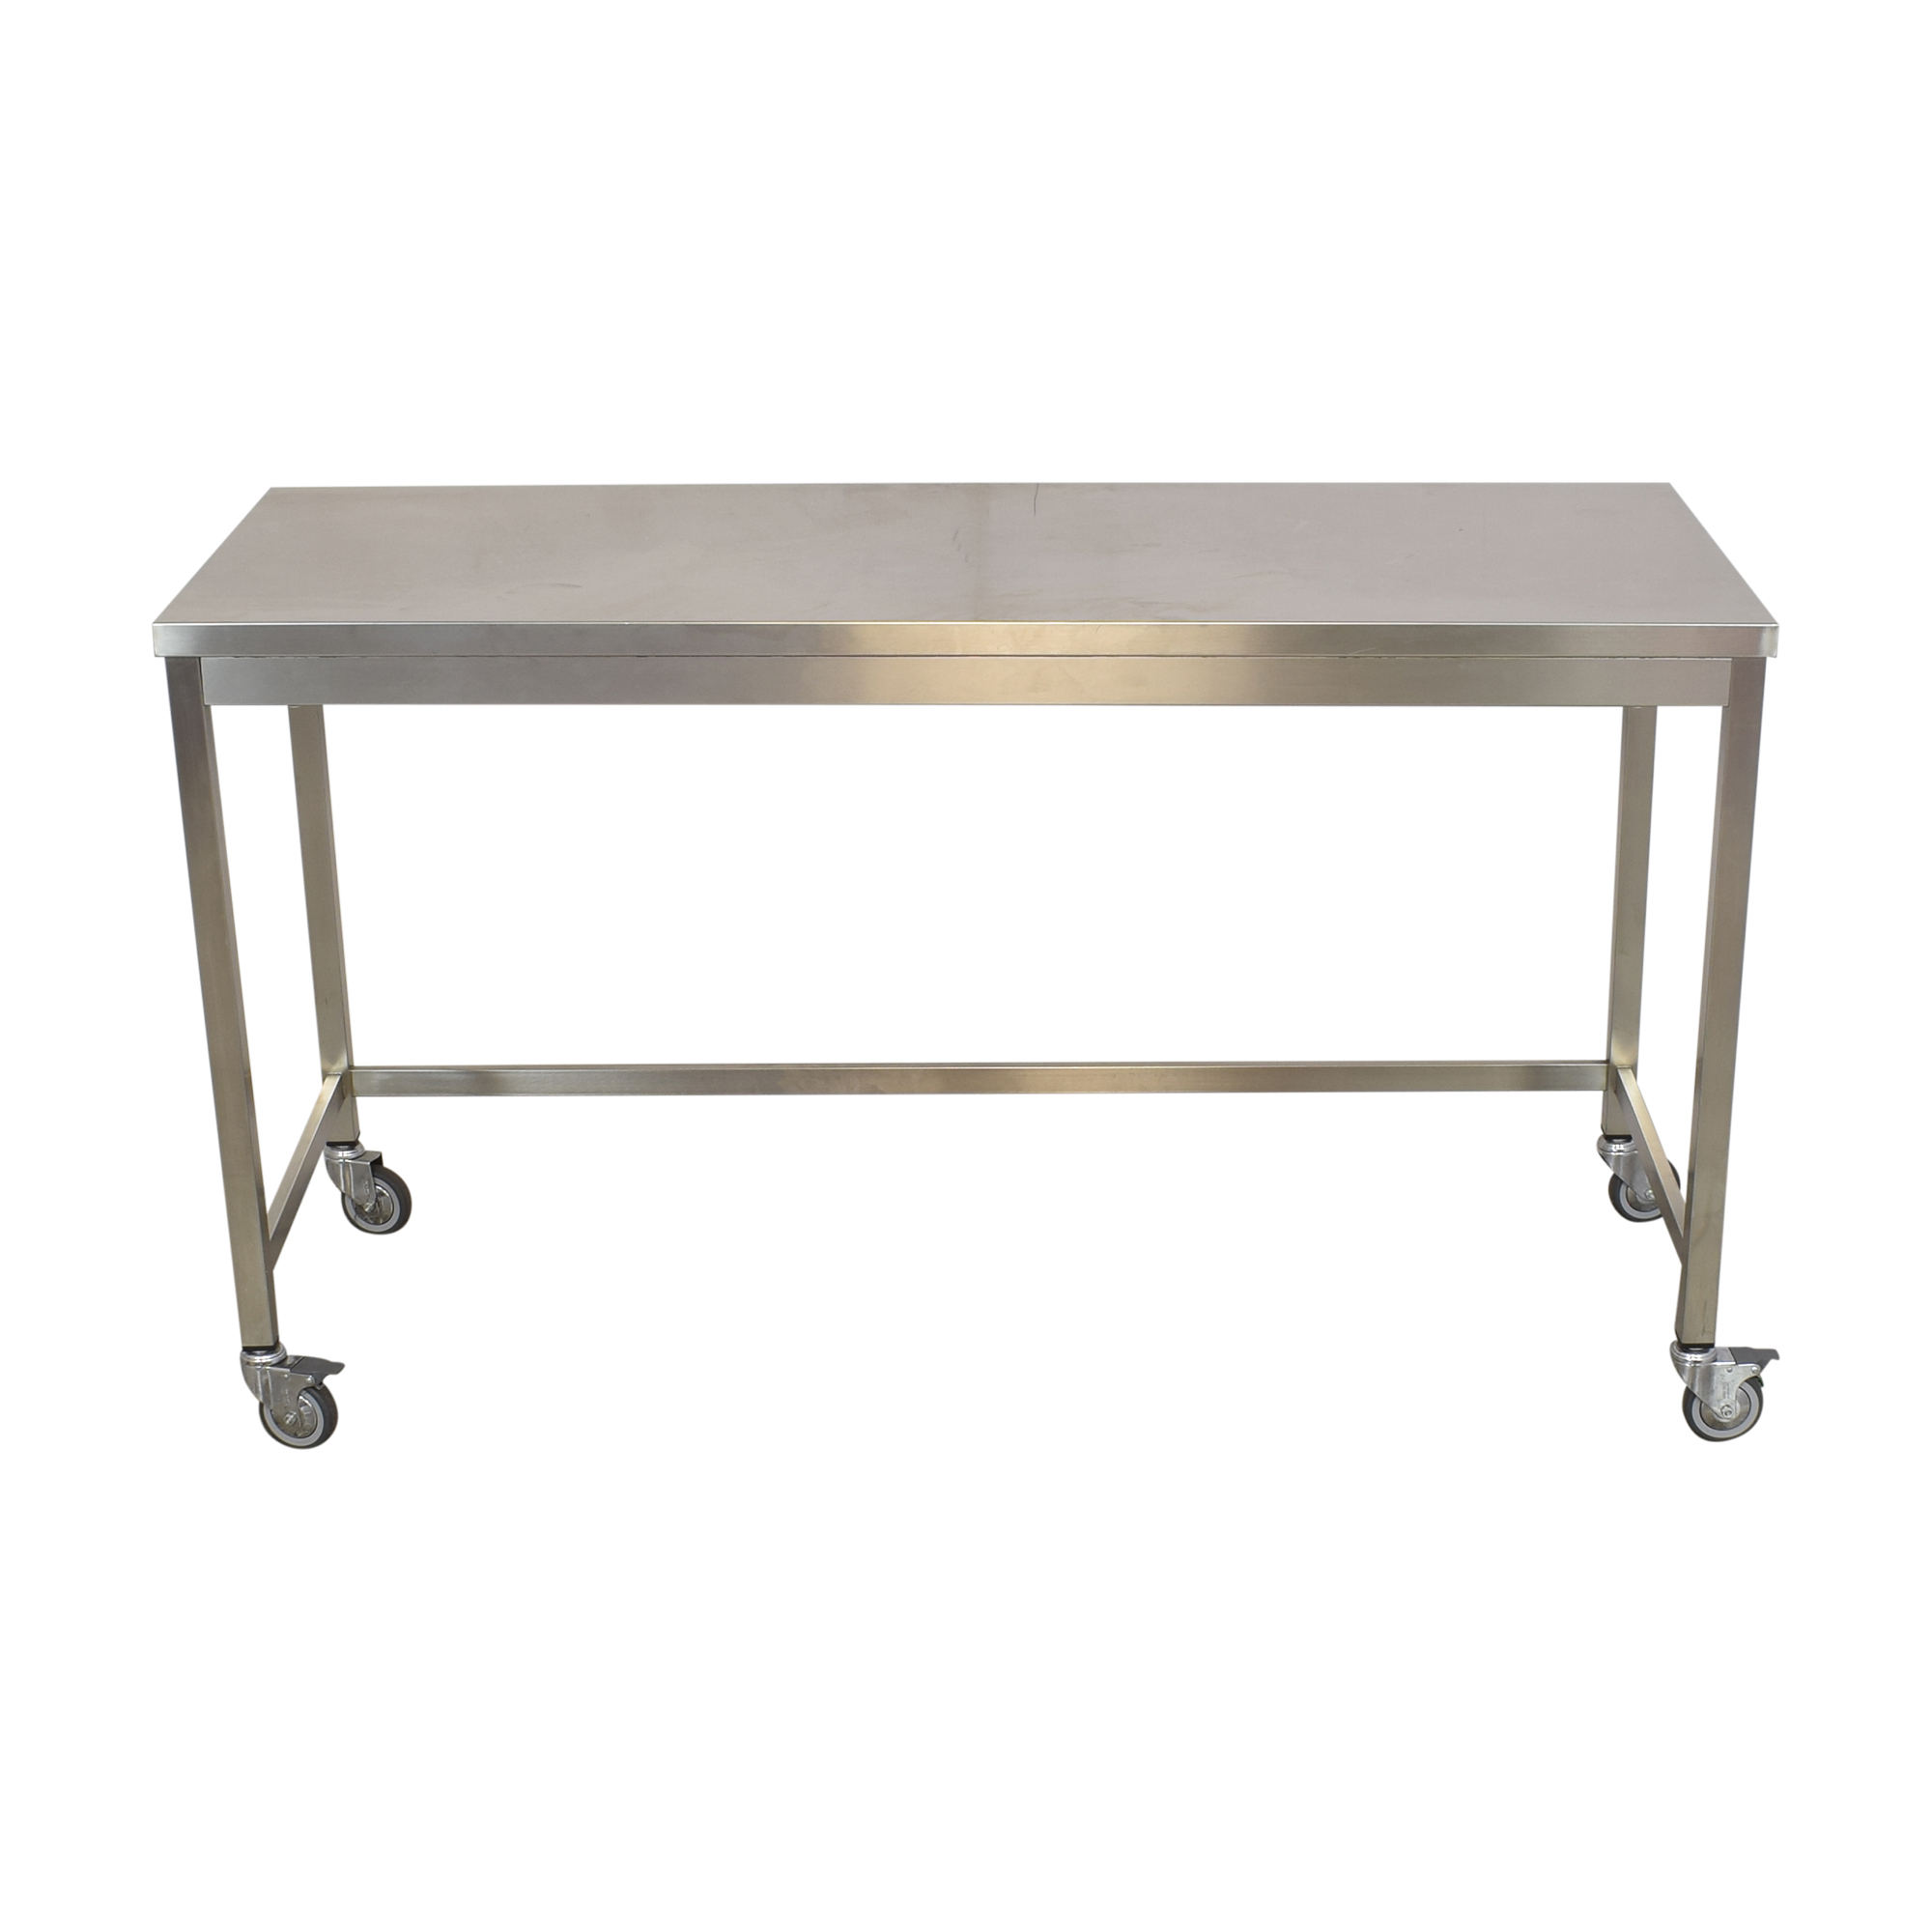 shop Design Within Reach Design Within Reach Quovis Standing-Height Table online